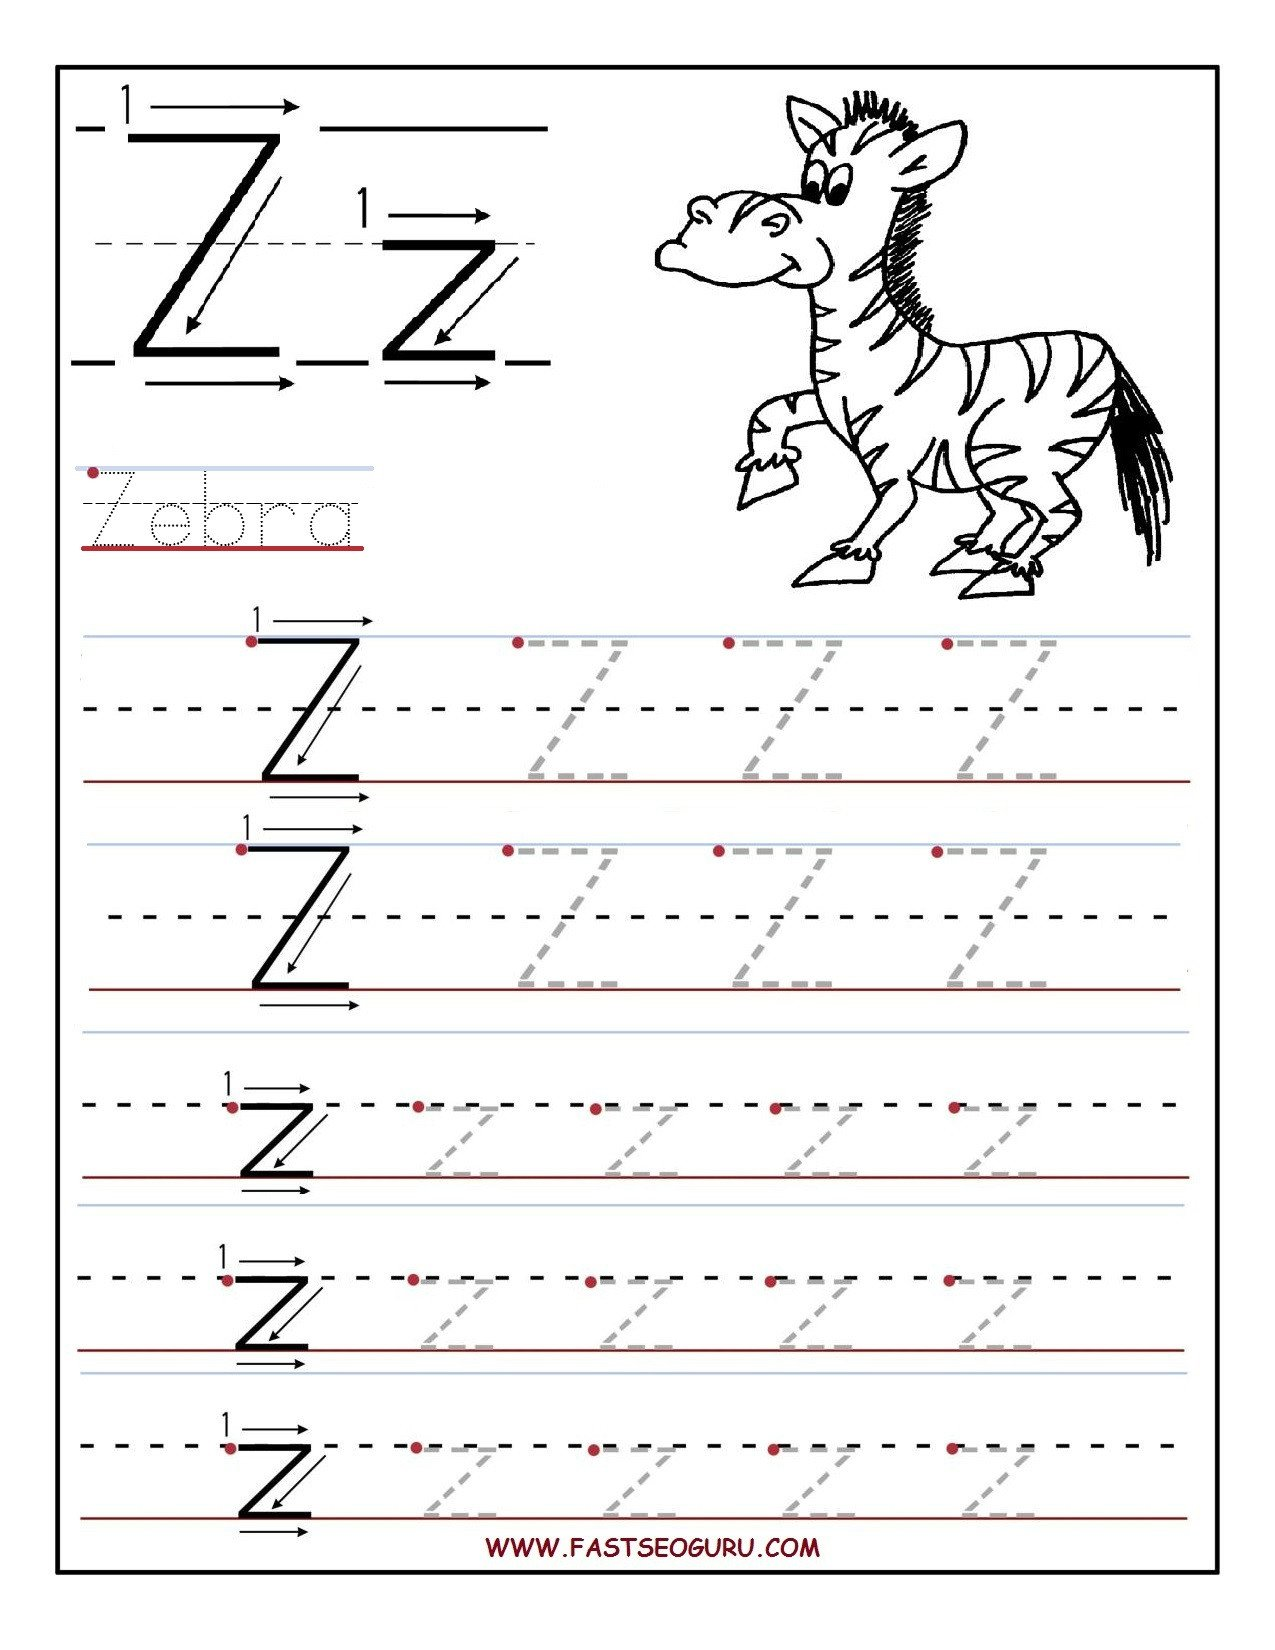 Letter Tracing Worksheets Az Printable Letter Tracing Worksheets for Preschool to